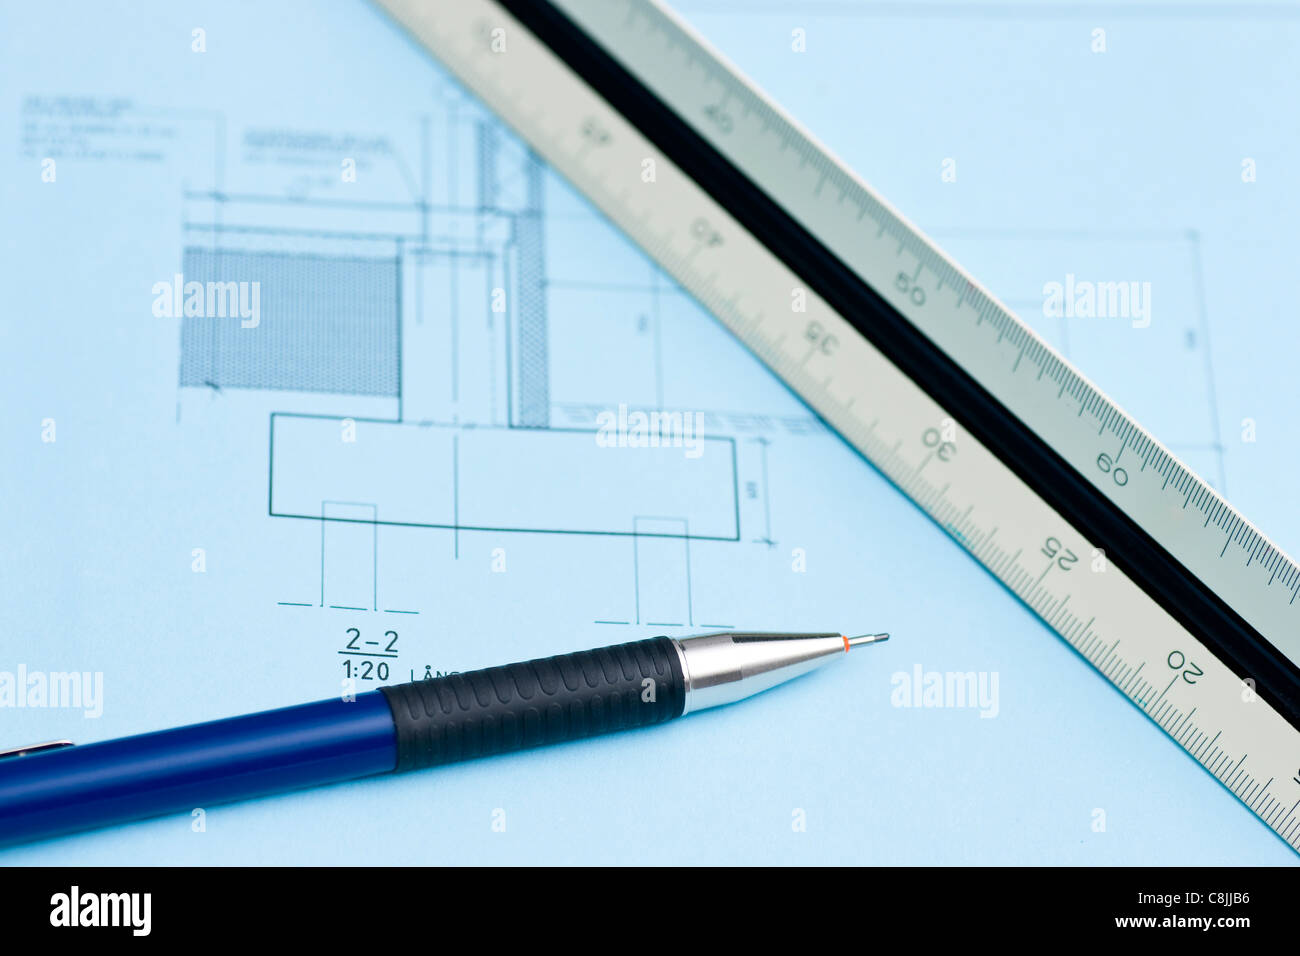 Build house draw blueprint stock photos build house draw blueprint construction blueprint stock image malvernweather Image collections